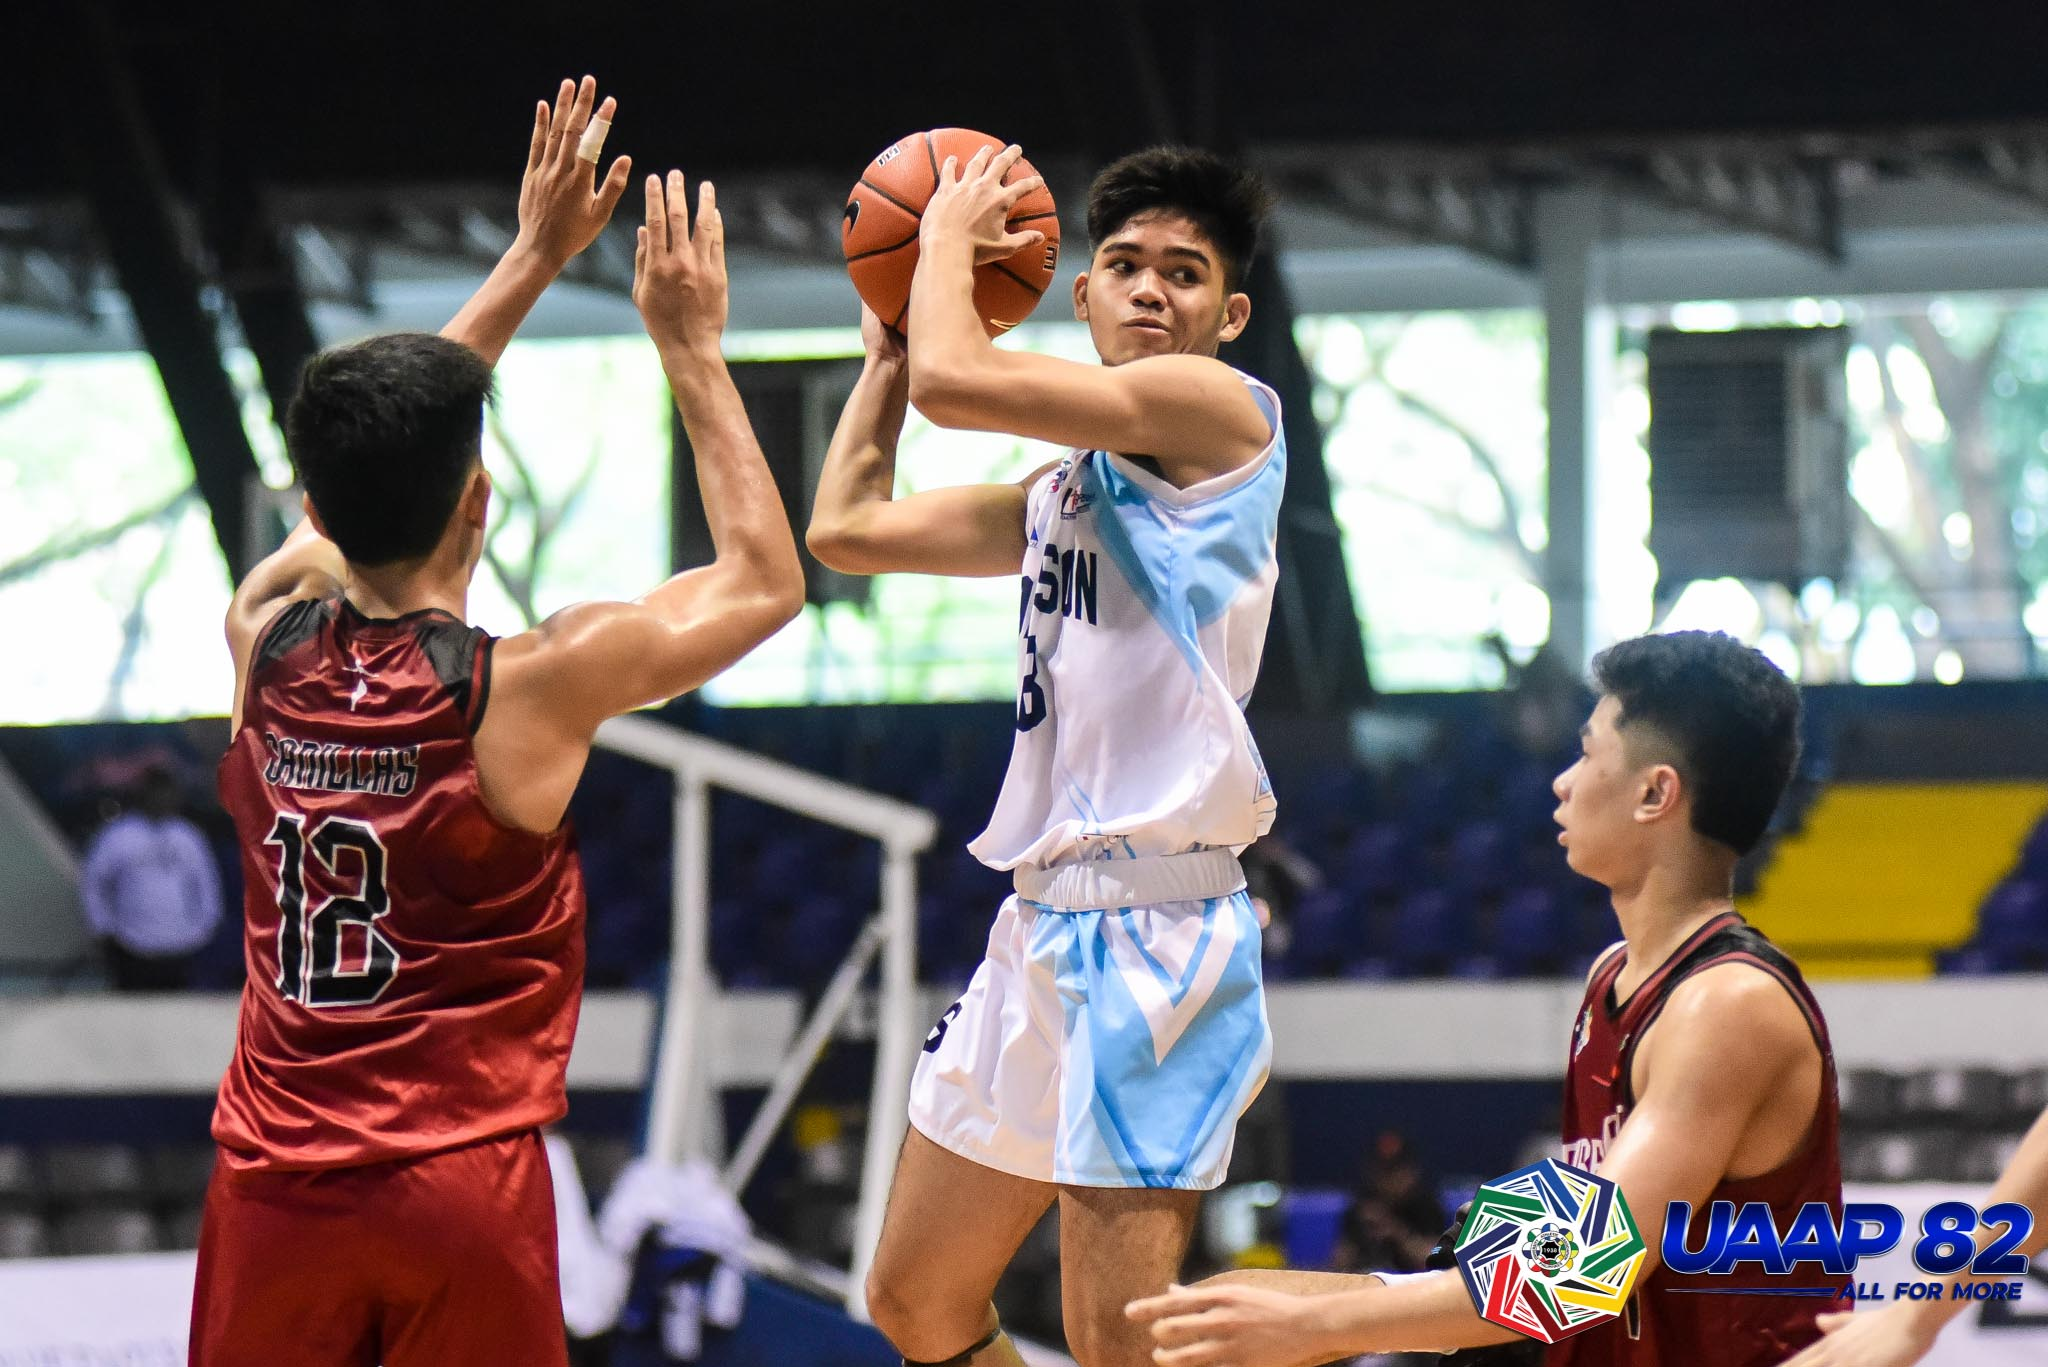 Tiebreaker Times Ateneo High vents ire on UE for solo third as NU-NS, FEU-D continue runs in UAAP 82 ADMU AdU Basketball DLSU FEU News NU UAAP UE UP UST  Yasir Hanapi UST Boys Basketball UPIS Boys Basketball UE Boys Basketball UAAP Season 82 Boys' Basketball UAAP Season 82 Terrence Fortea Sean Torculas Ruzzell Dominguez Rojan Montemayor Reggie Varilla Ray Torres NU Boys Basketball Lebron Lopez Kevin Quiambao Kean Baclaan Jynno Ladimo Joshua Lazaro Jorick Bautista Jon Cudiamat John Figueroa John Erolon Jethro Escoto Gerry Abadiano FEU Boys Basketball DLSZ Boys Basketball CJ Austria Chiolo Anonuevo Carl Tamayo Bismarck Lina Ateneo Boys Basketball Adamson Boys Basketball